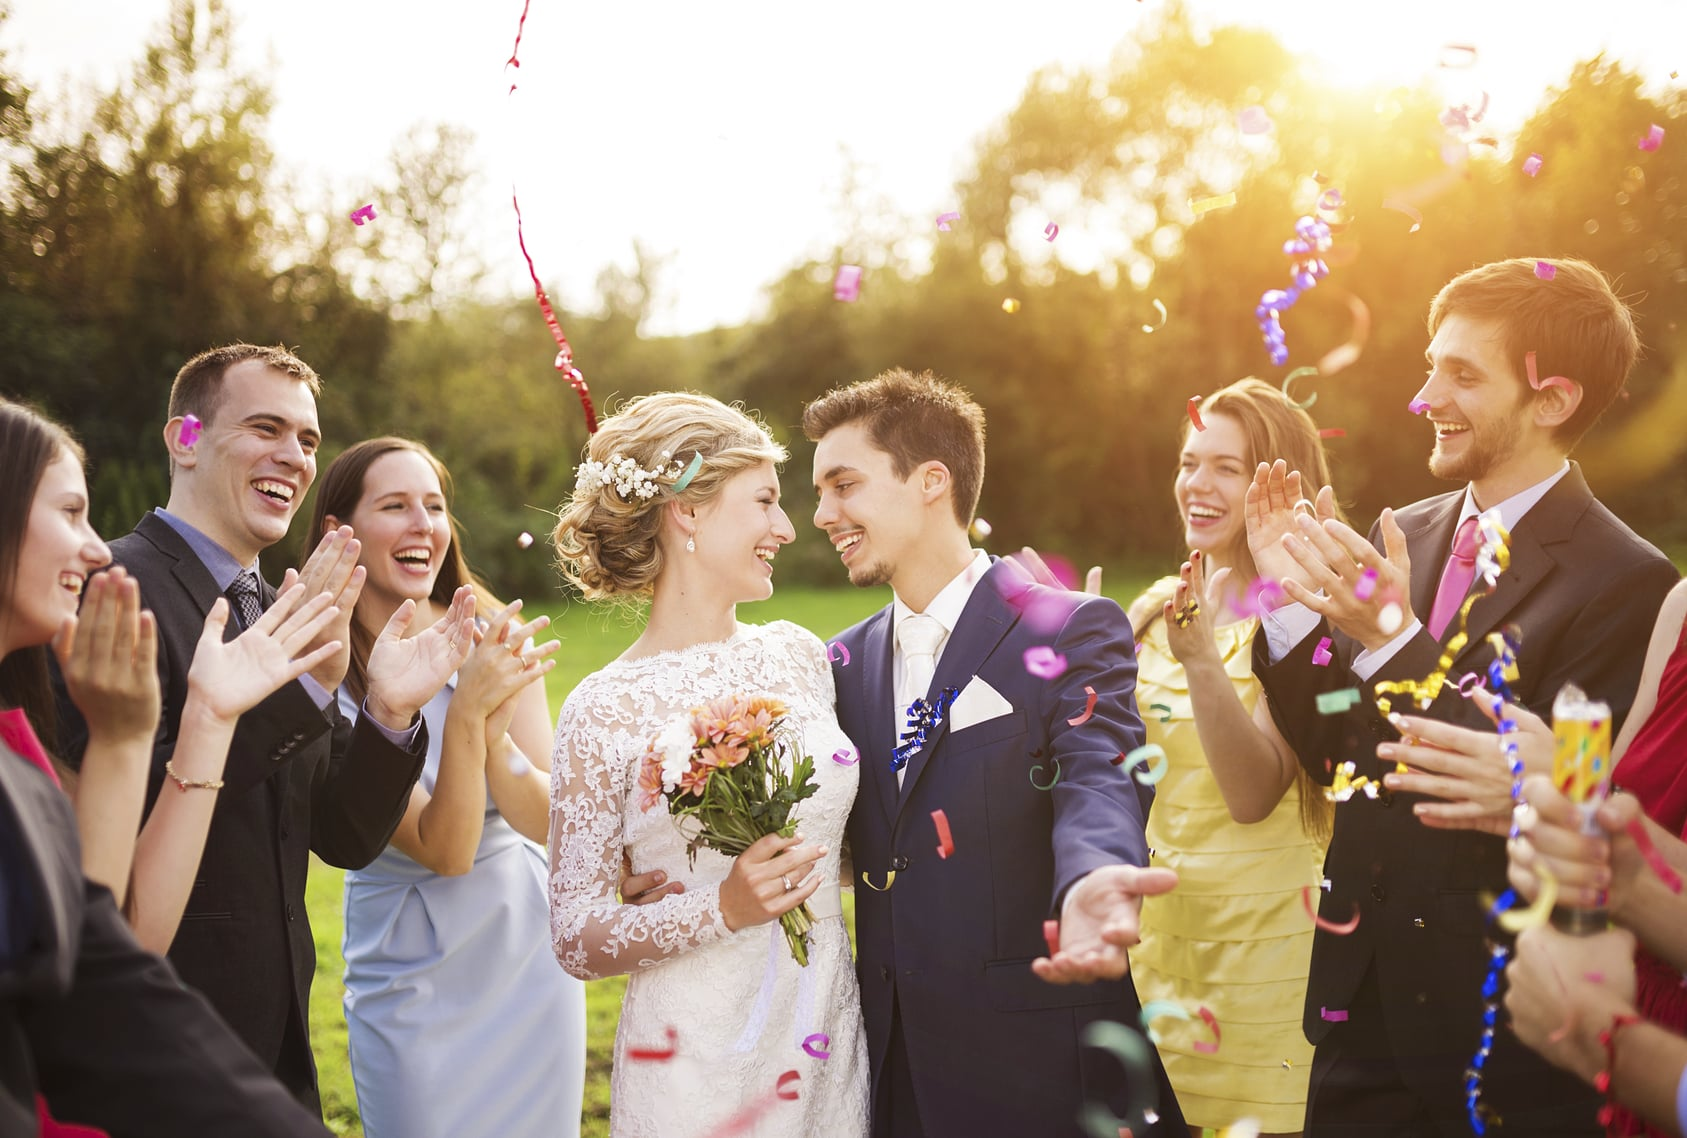 How Much Money To Give In Weddings Popsugar Australia Smart Living